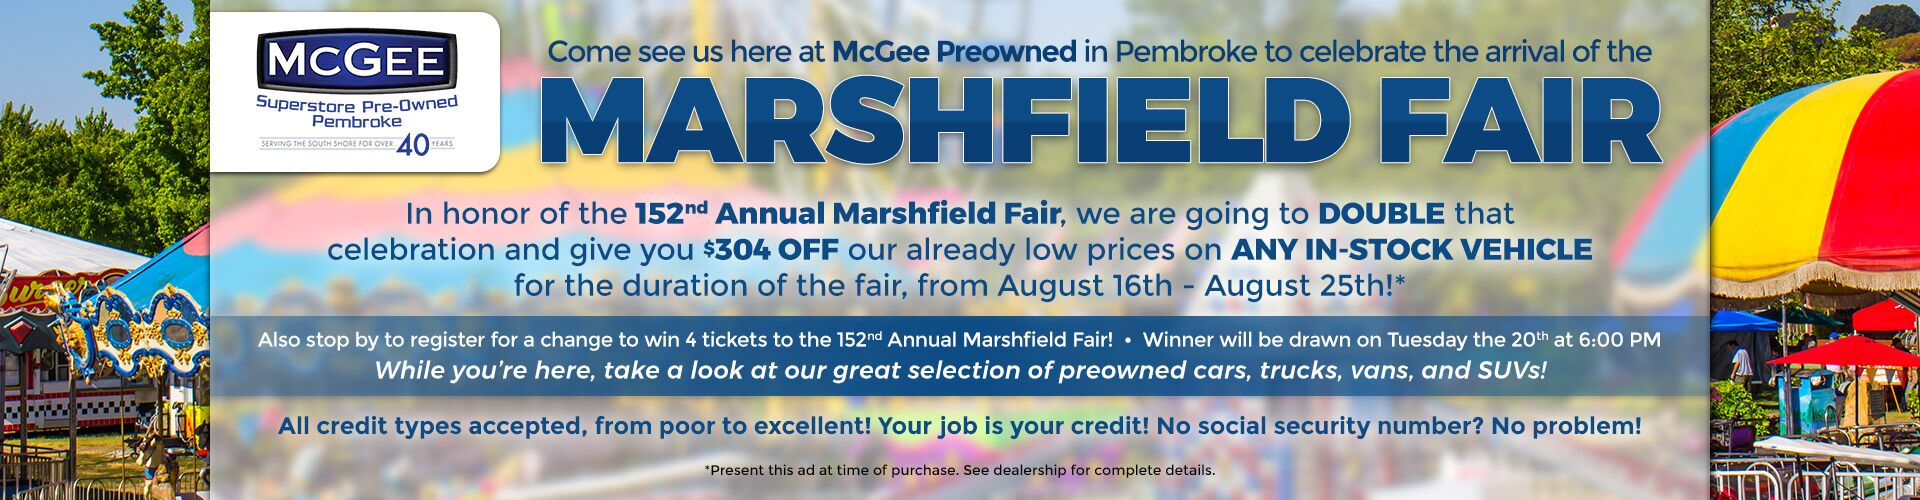 Marshfield Fair